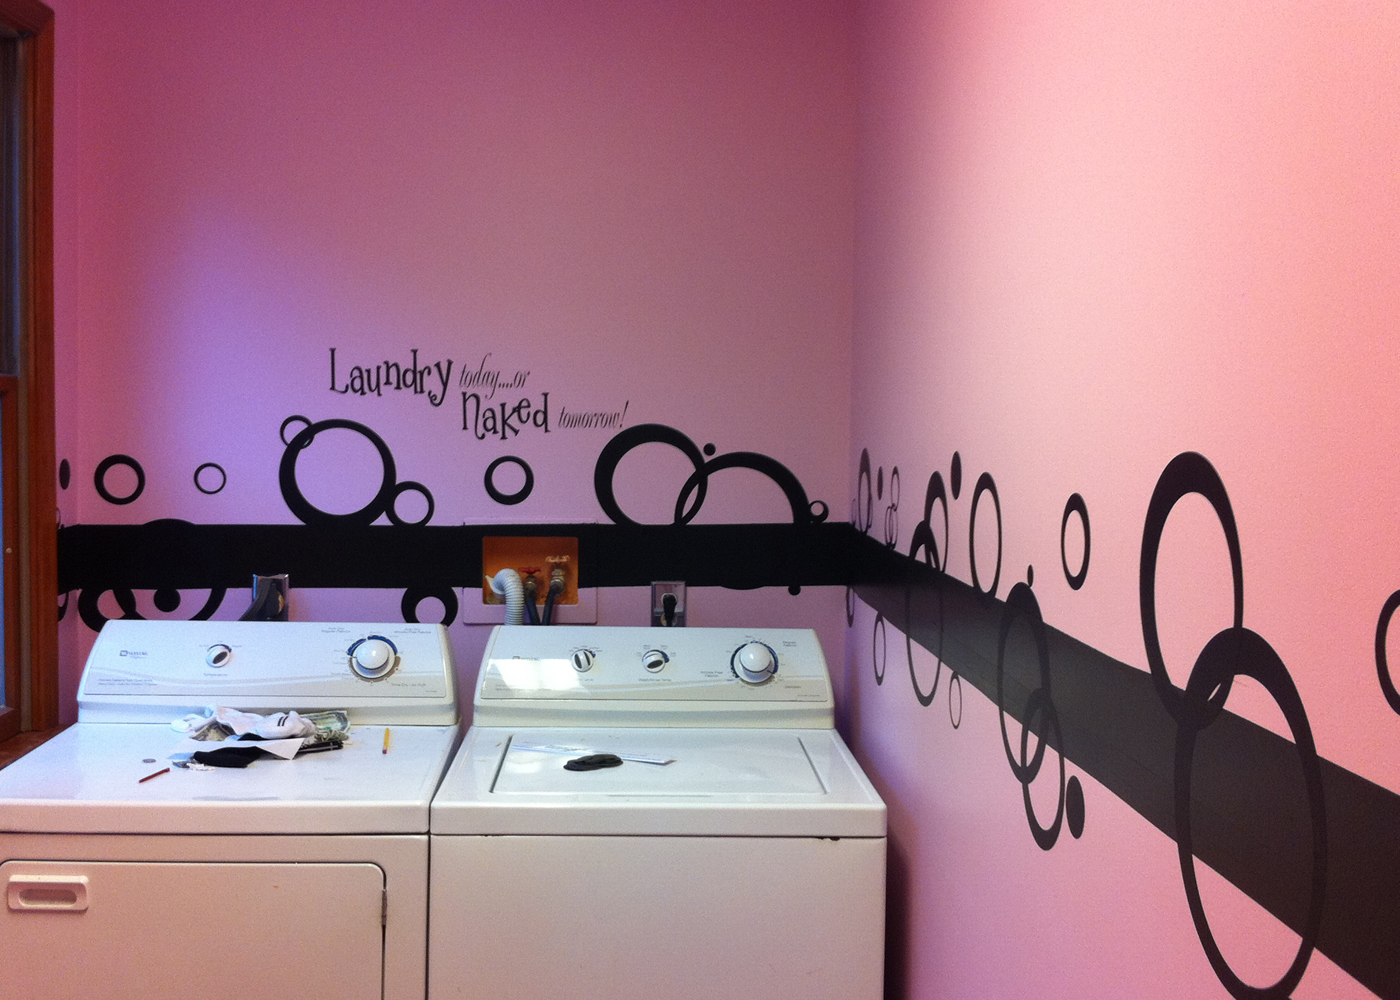 laundry-room-vinyl-wall-decal-quote-with-vinyl-decal-circles.jpg